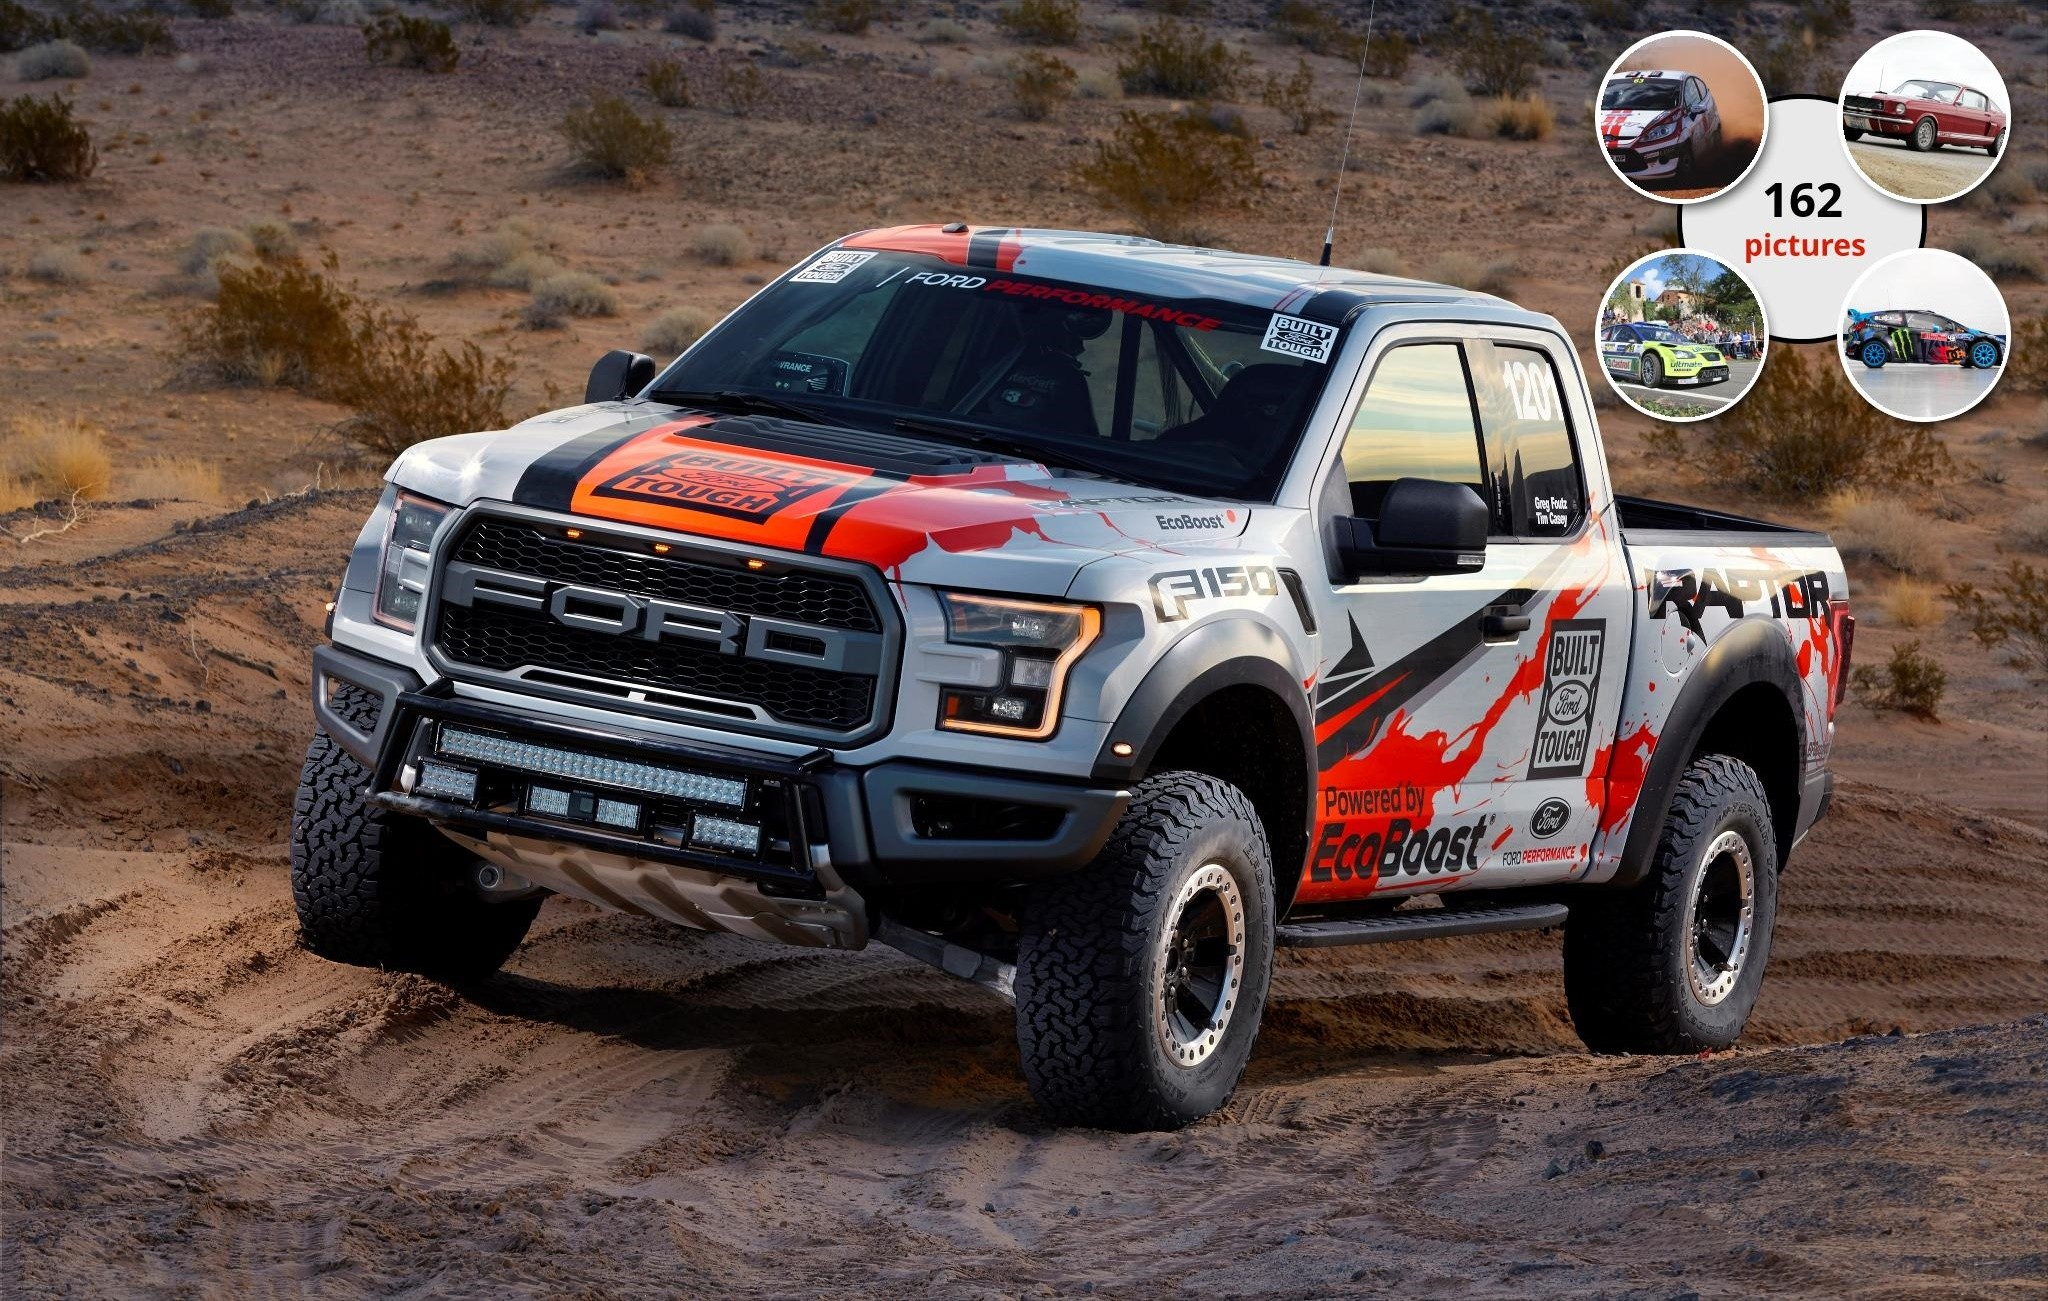 2048x1301 2017 ford f 150 raptor race truck images.